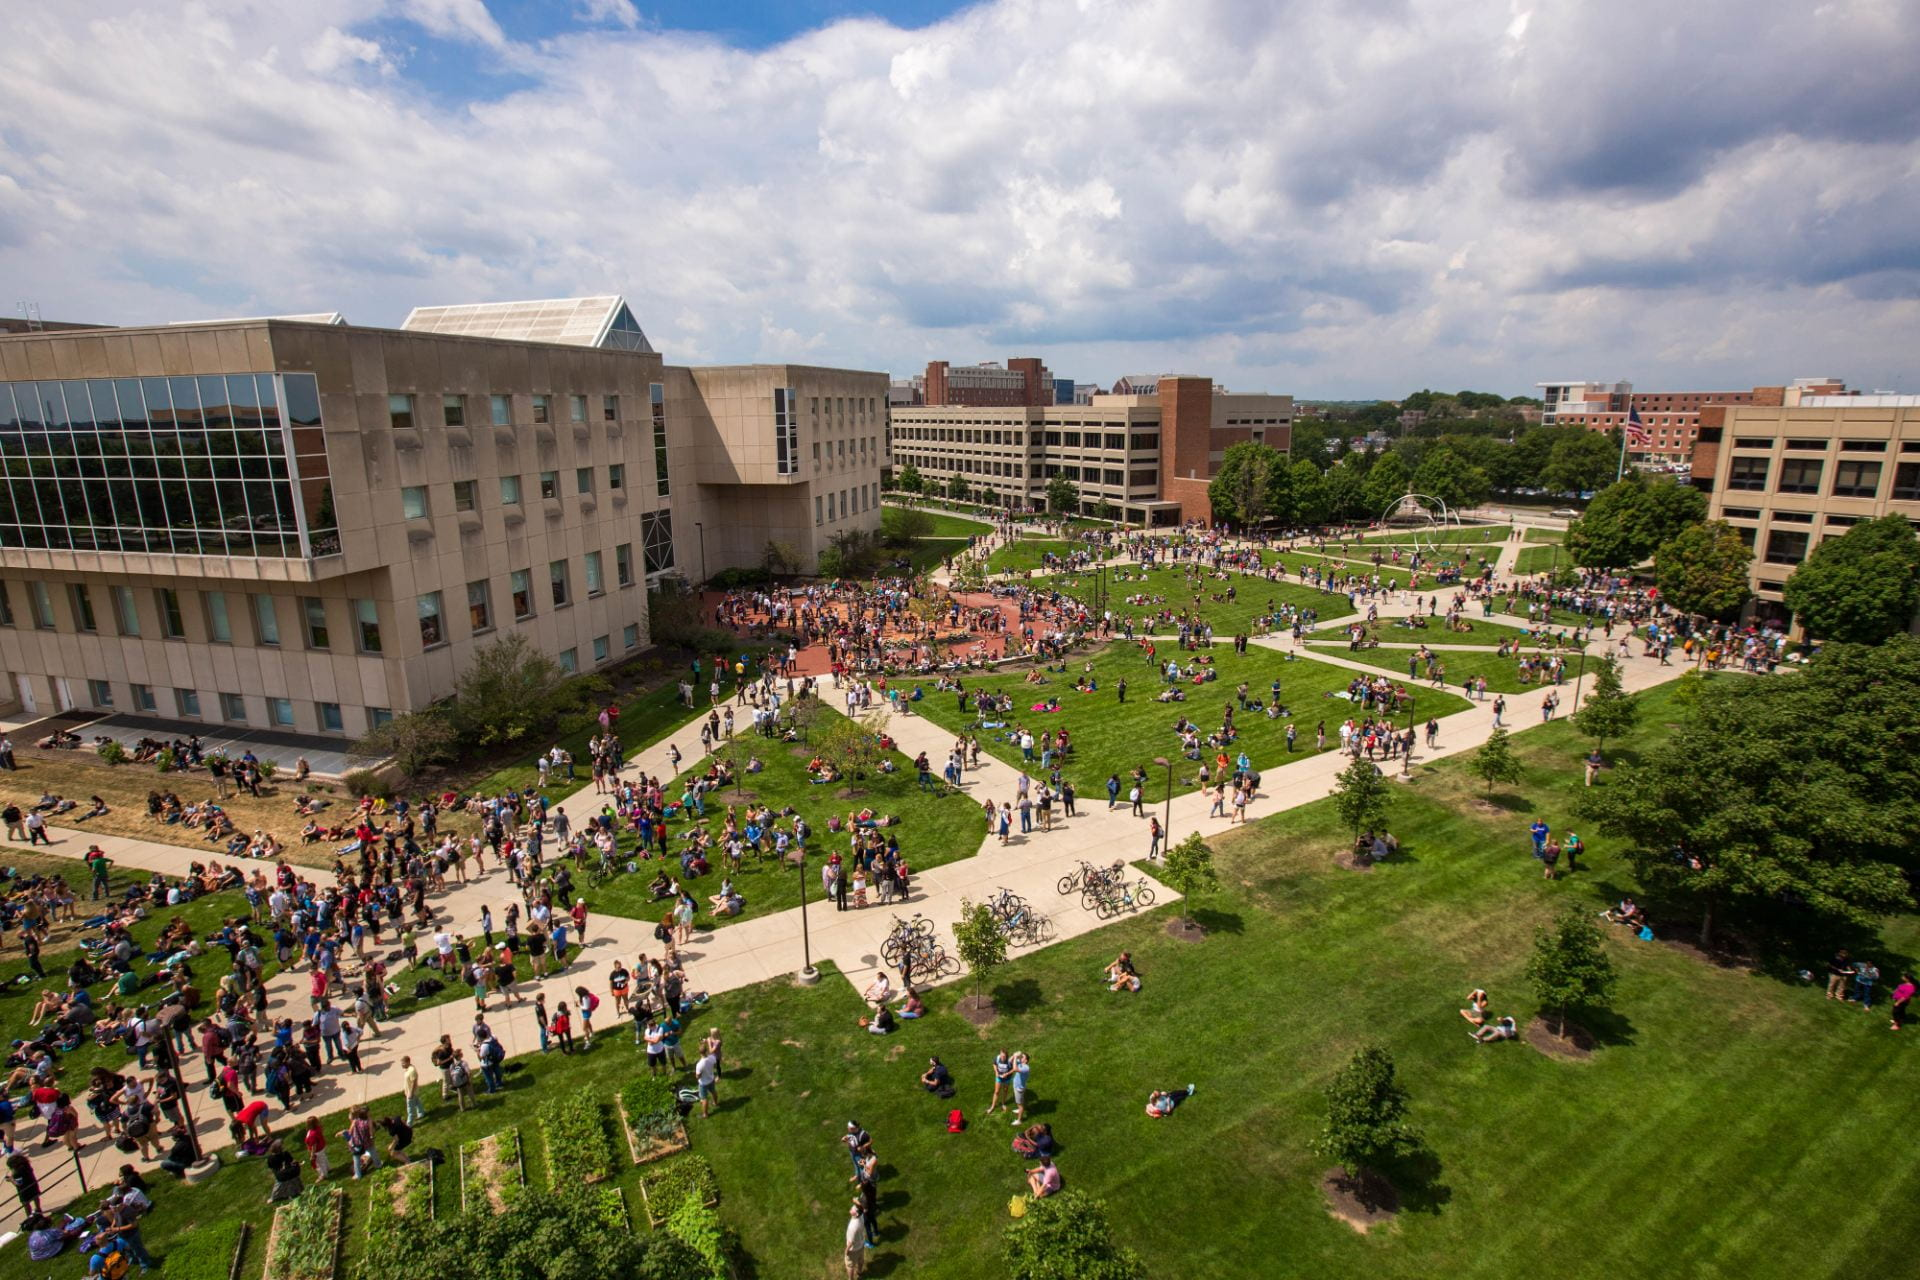 wide aerial shot of students walking around on campus.